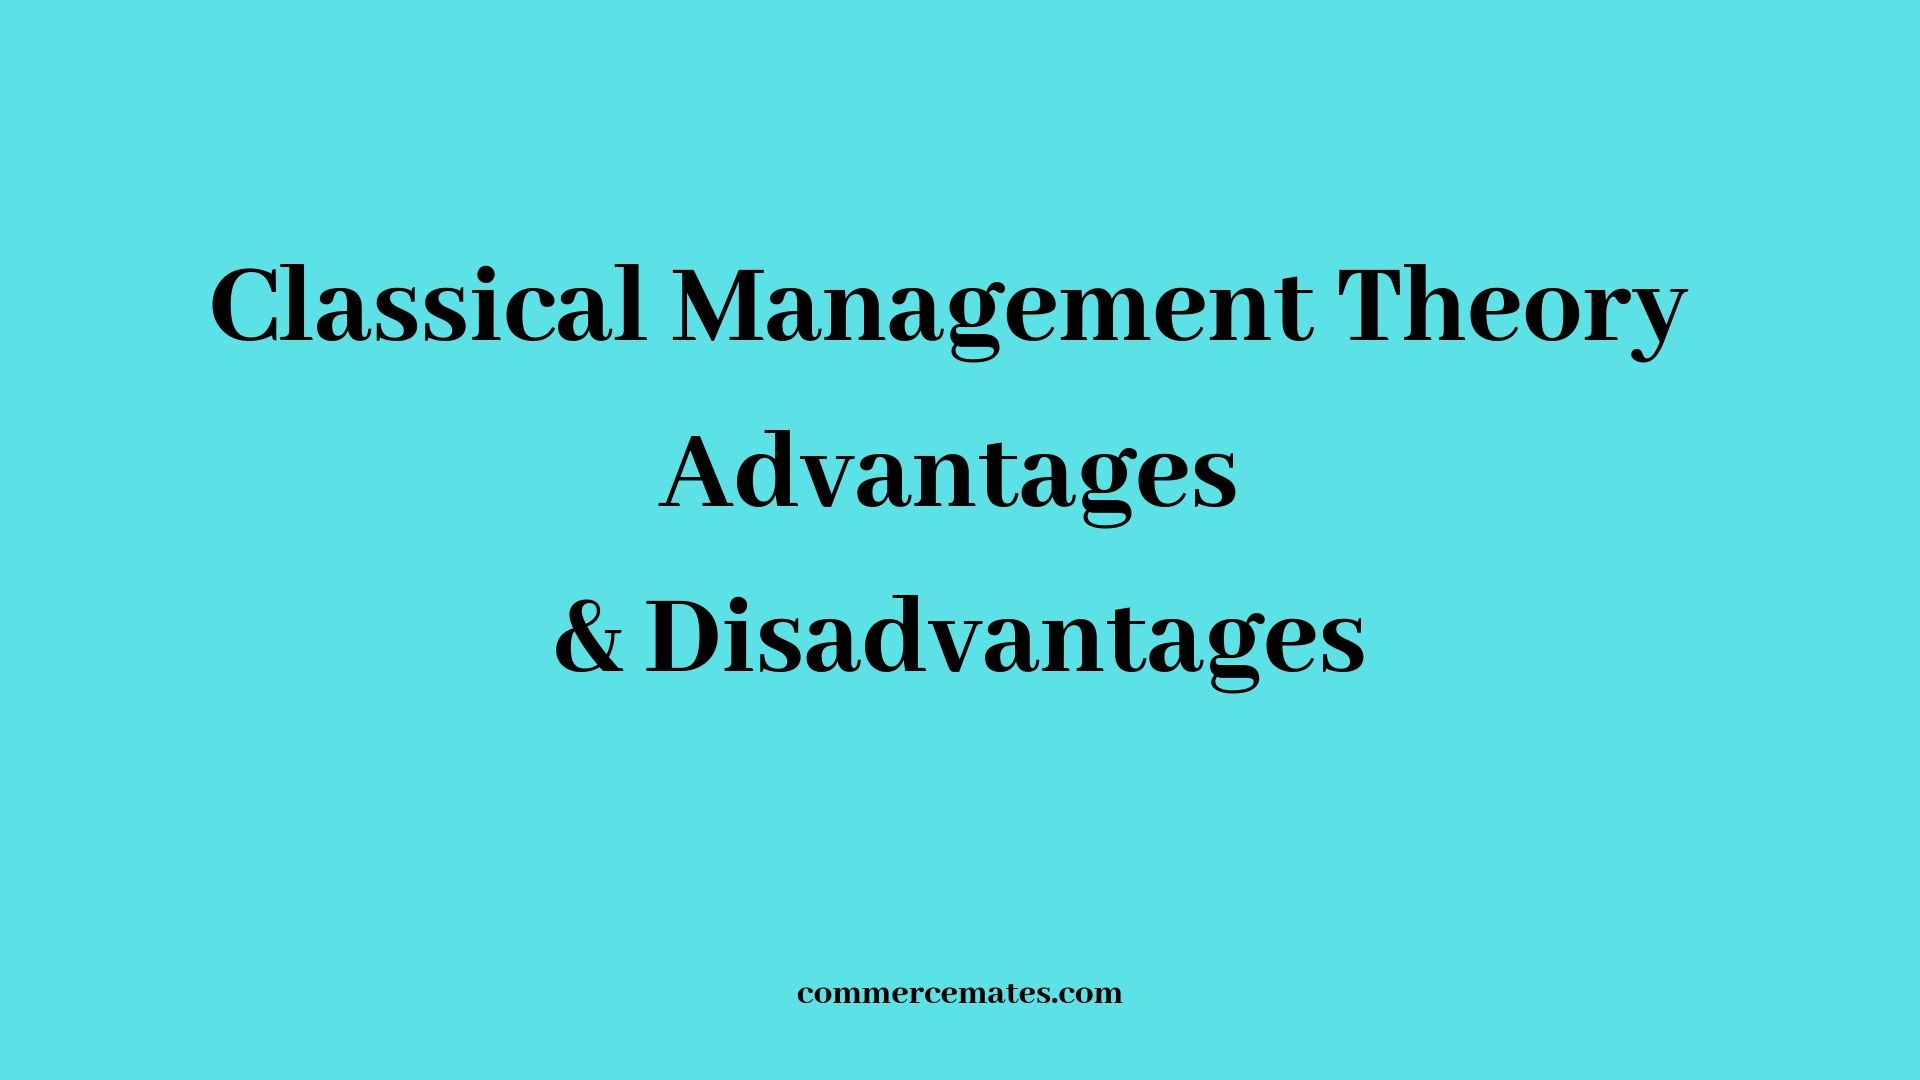 Classical Management Theory Advantages and Disadvantages